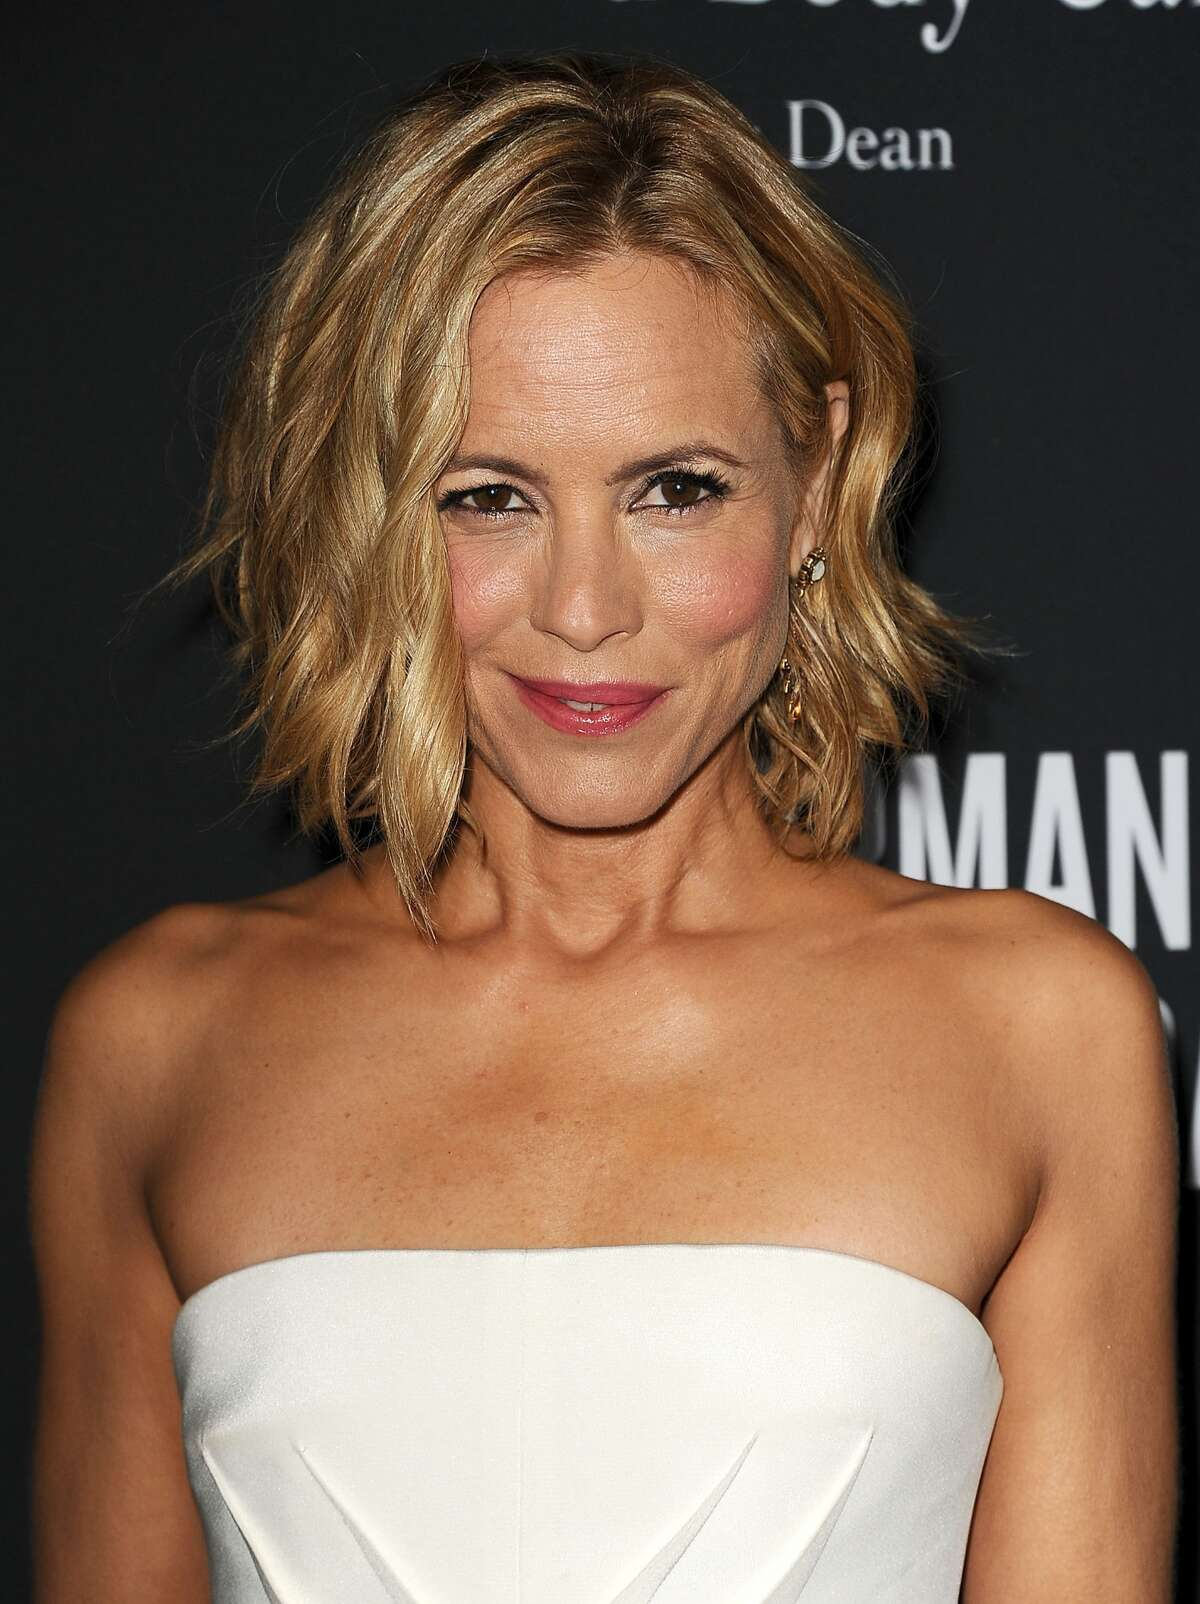 Actress Maria Bello has revealed she's in a relationship with a woman in a heartfelt article for the New York Times. The star wrote a piece for the newspaper on Friday, Nov. 27, 2913, recalling the moment she came out to her 12-year-old son, Jackson, who asked her if she was in a relationship with anyone. In the article, titled